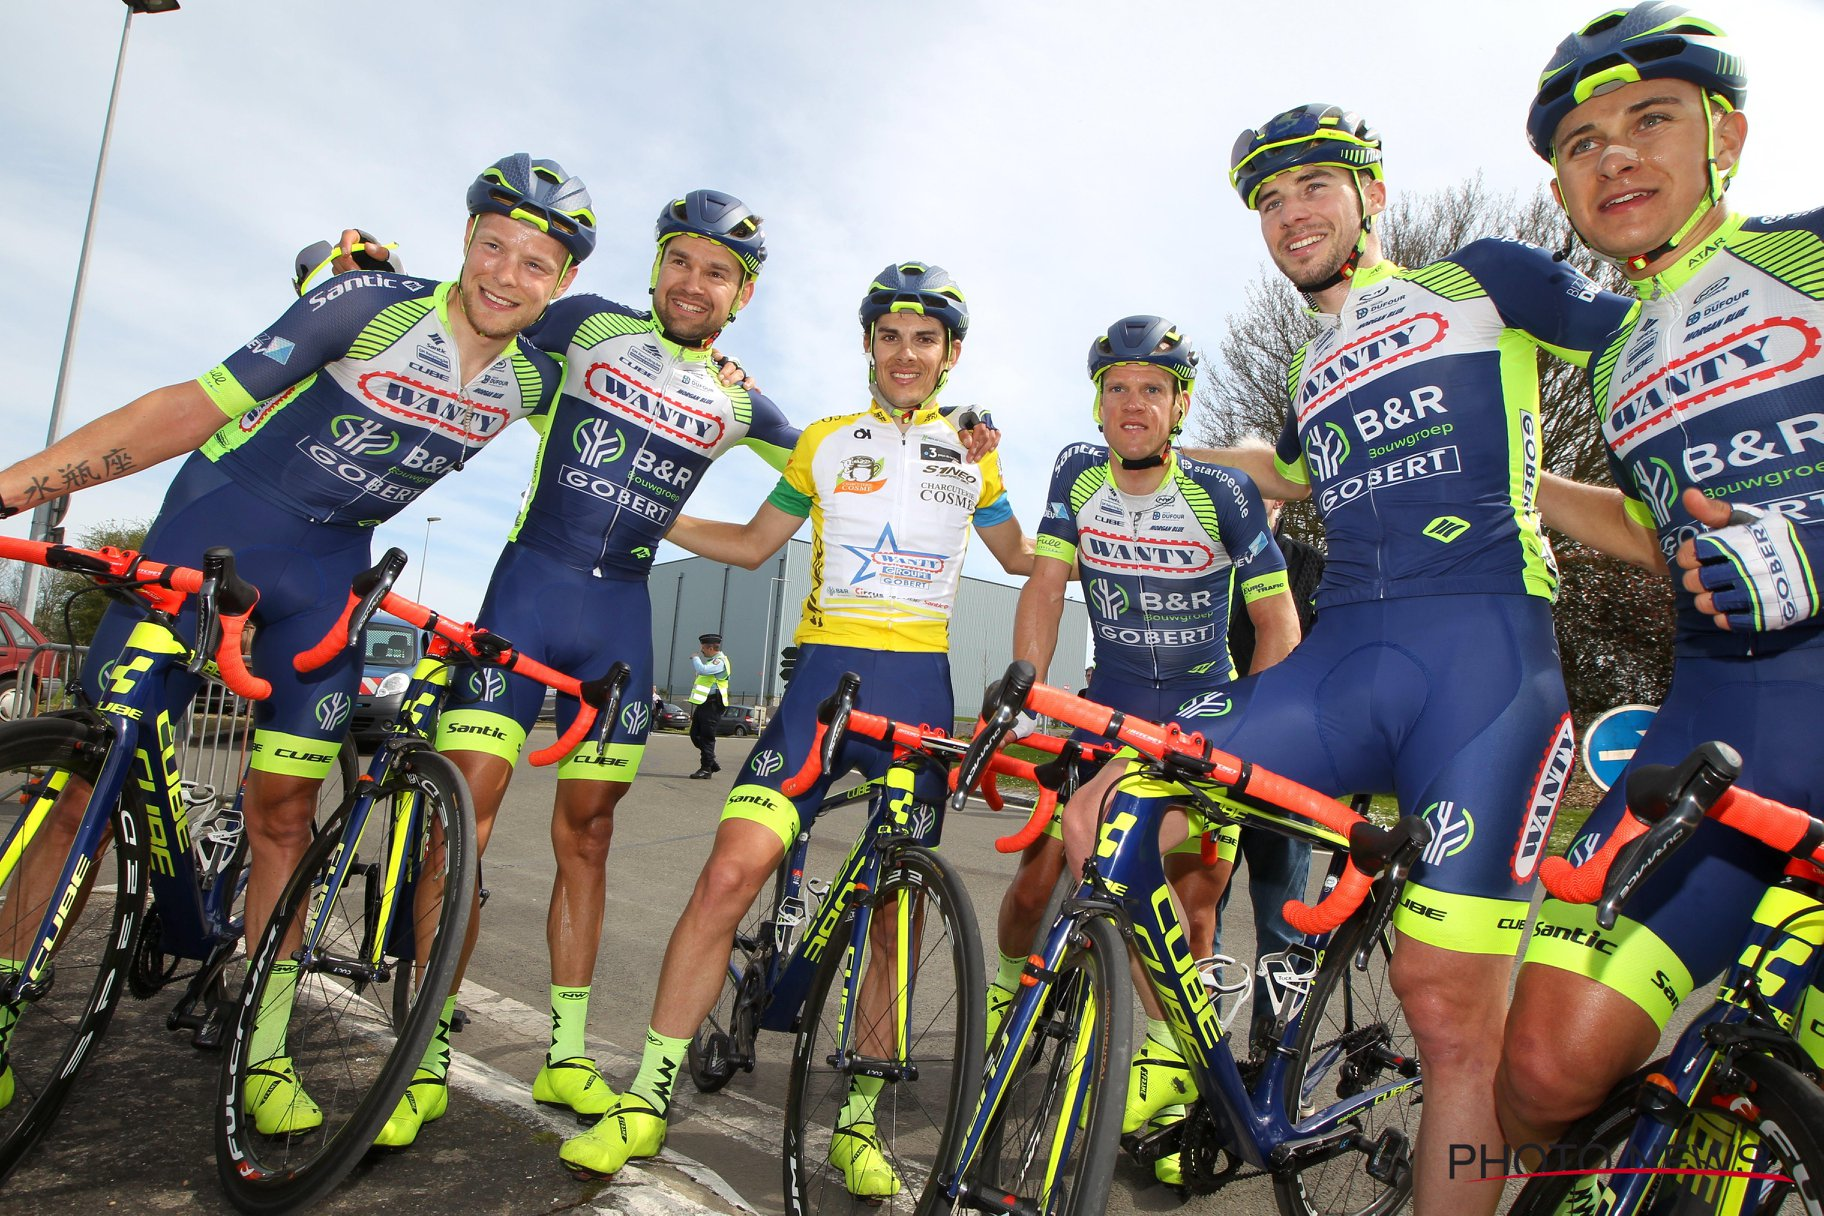 Victoire collective de la Wanty-Groupe Gobert sur le Circuit de la Sarthe. © Photo News